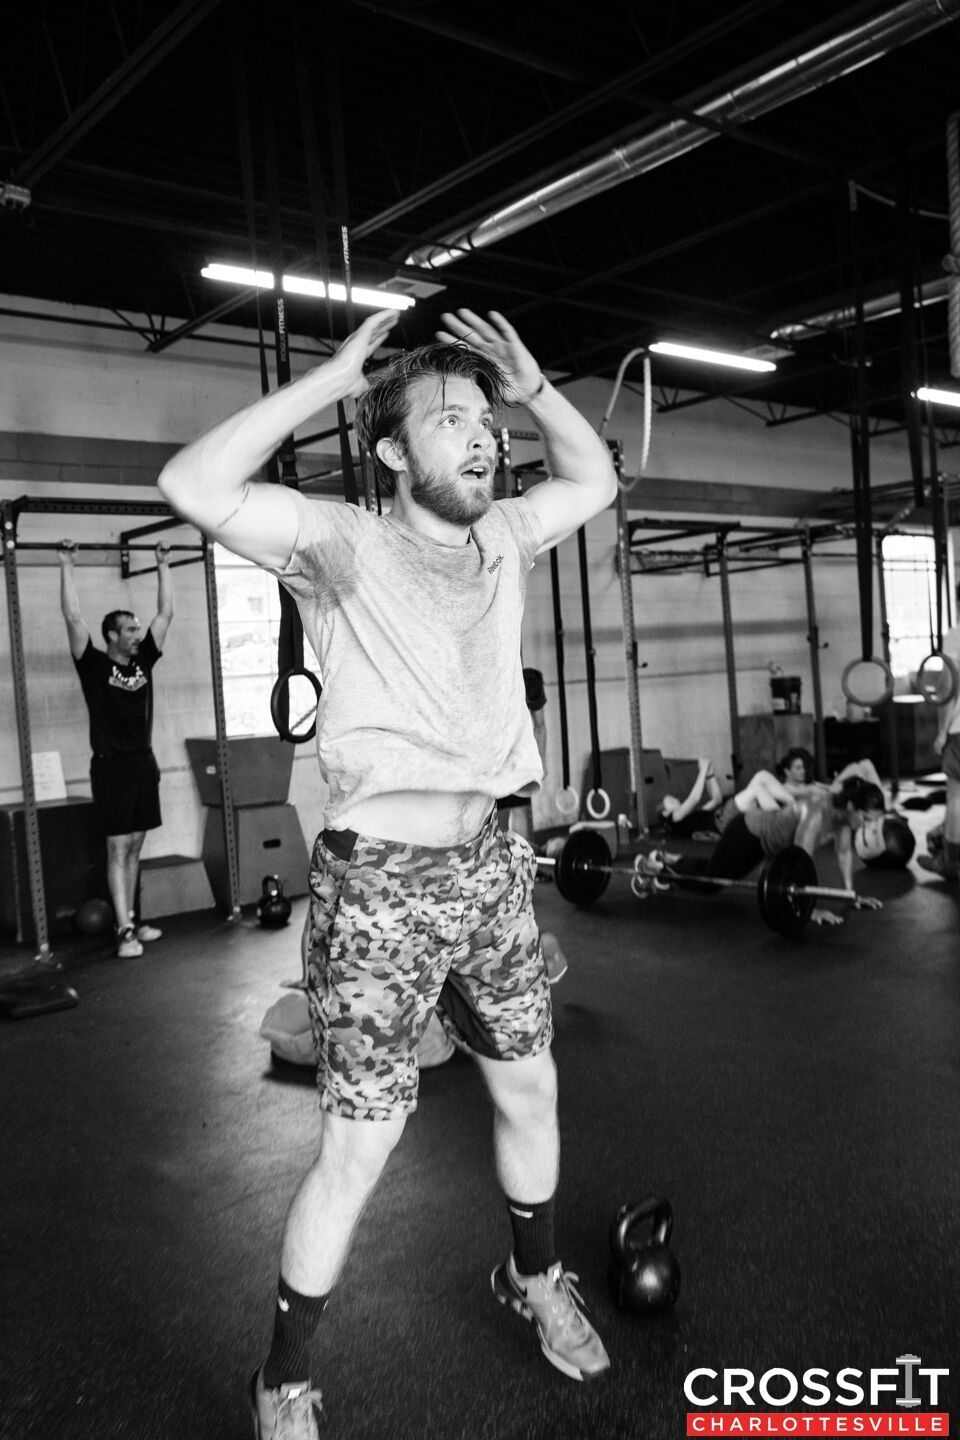 crossfit-charlottesville_0406_preview.jpeg